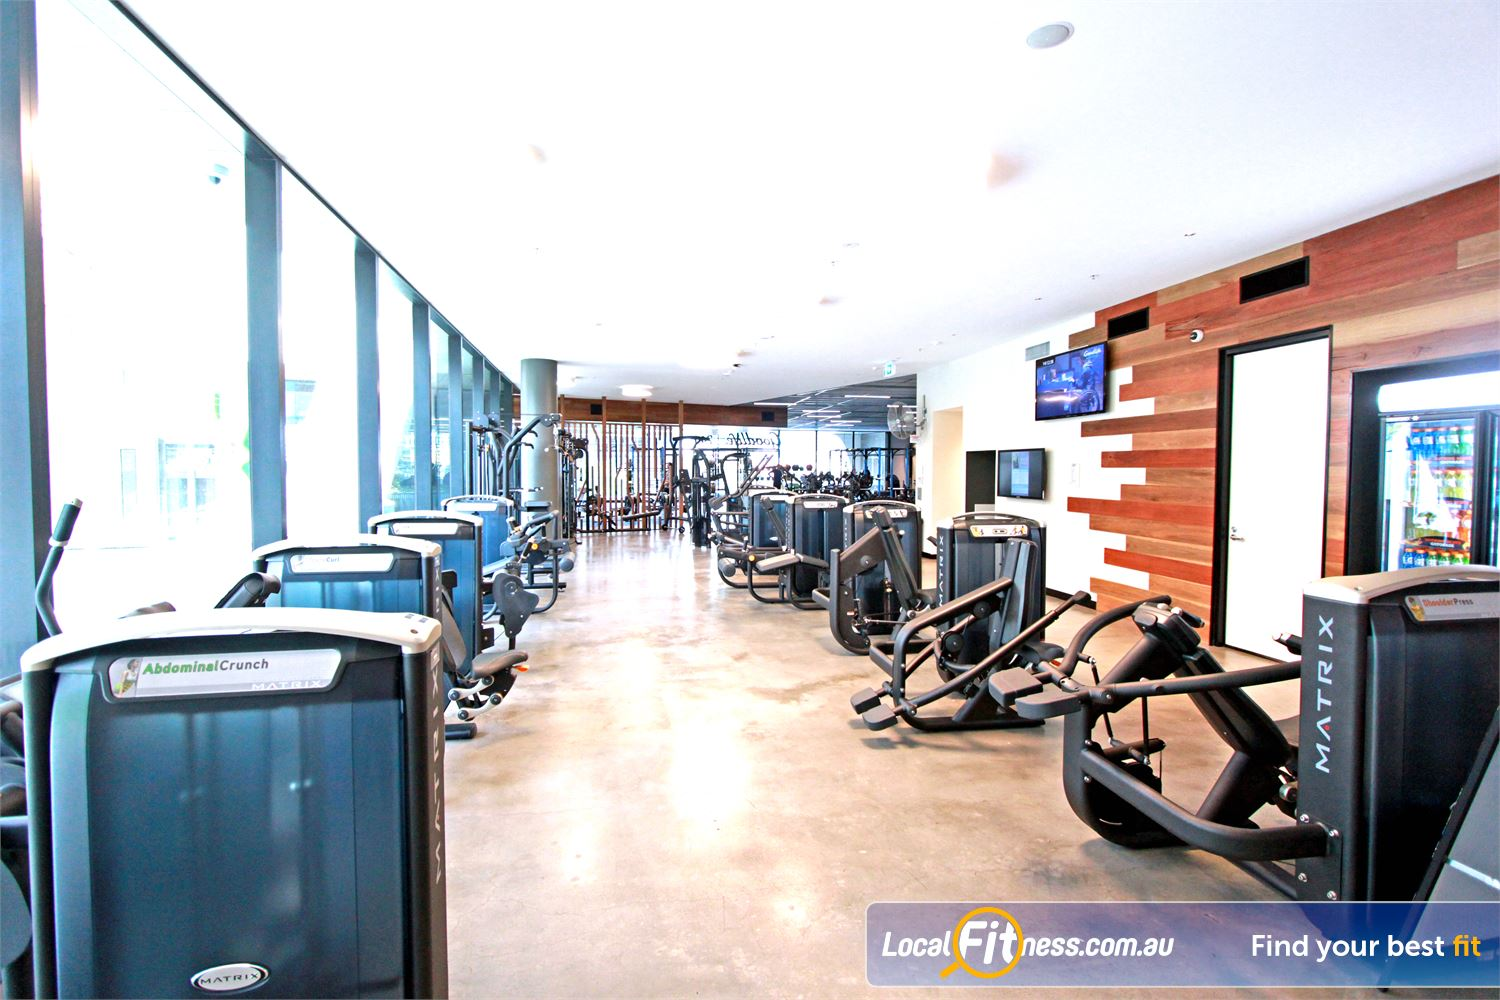 Goodlife Health Clubs Docklands The state of the art Docklands gym in Medibank Place.